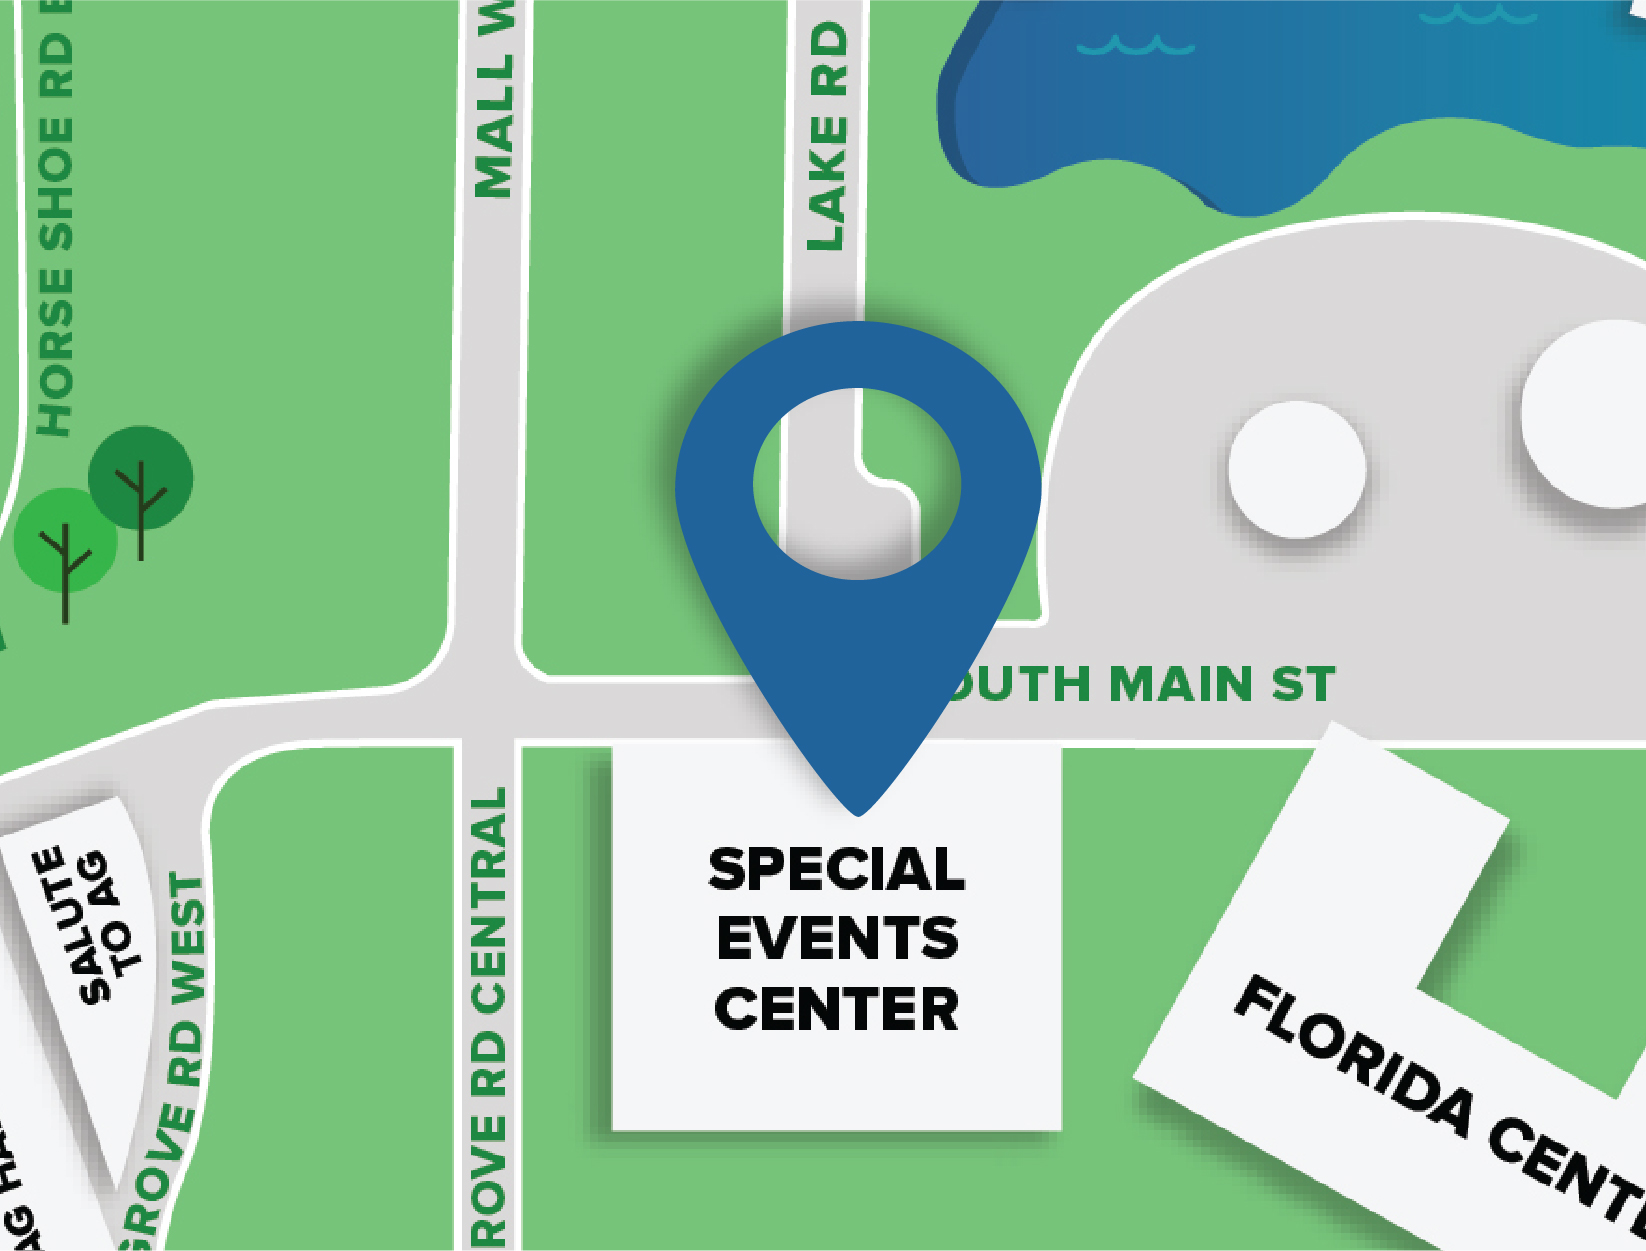 Special Events Center Map Location